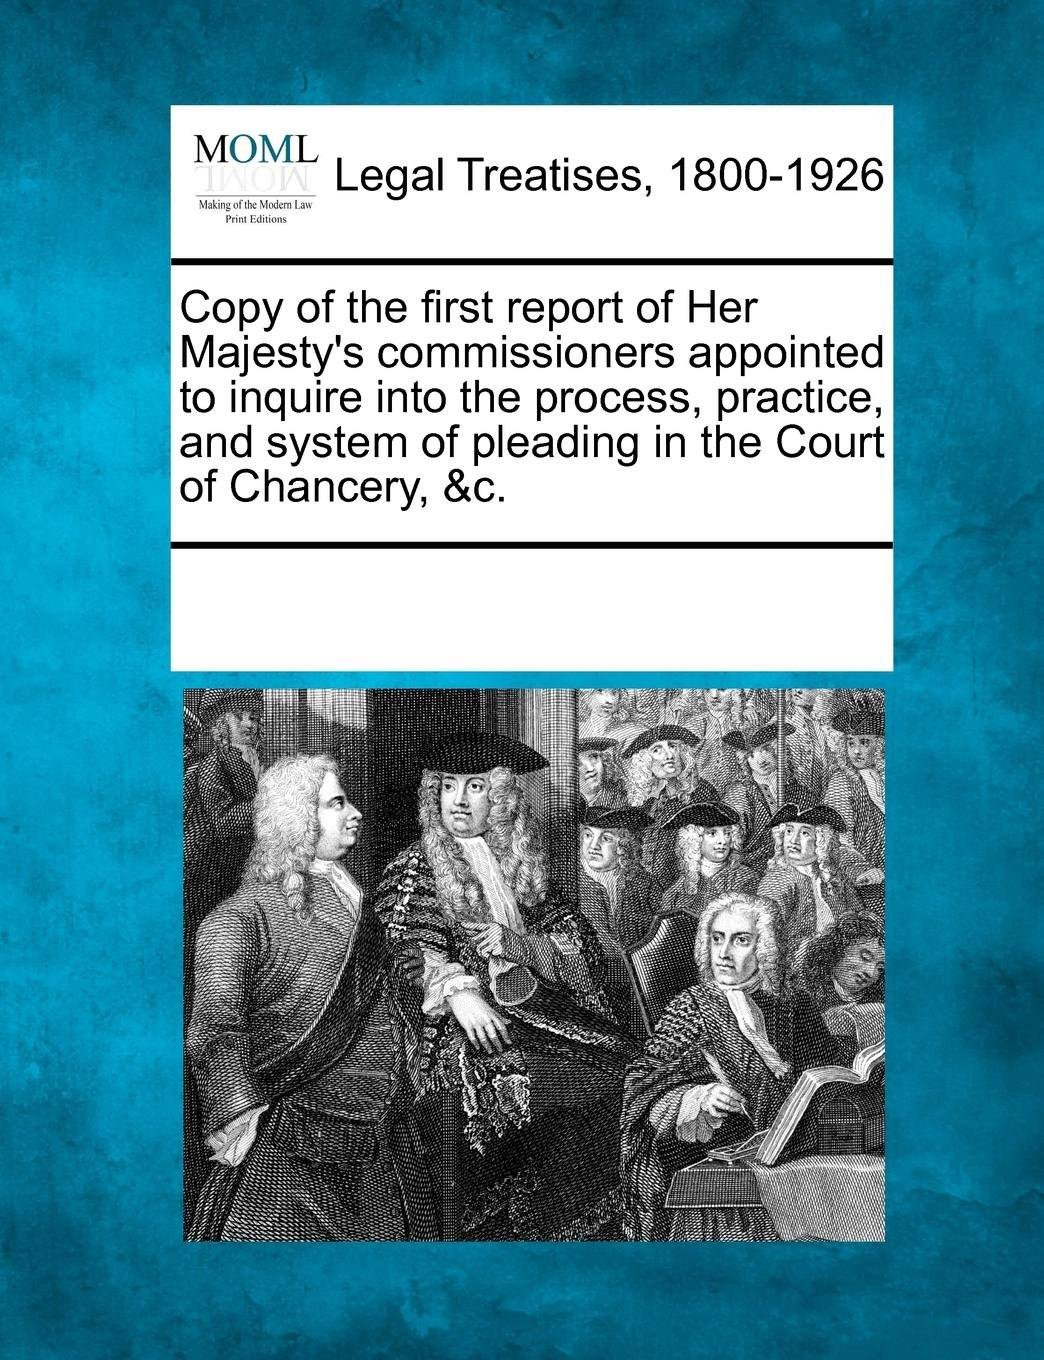 Copy of the first report of Her Majesty's commissioners appointed to inquire into the process, practice, and system of pleading in the Court of Chancery, &c. PDF